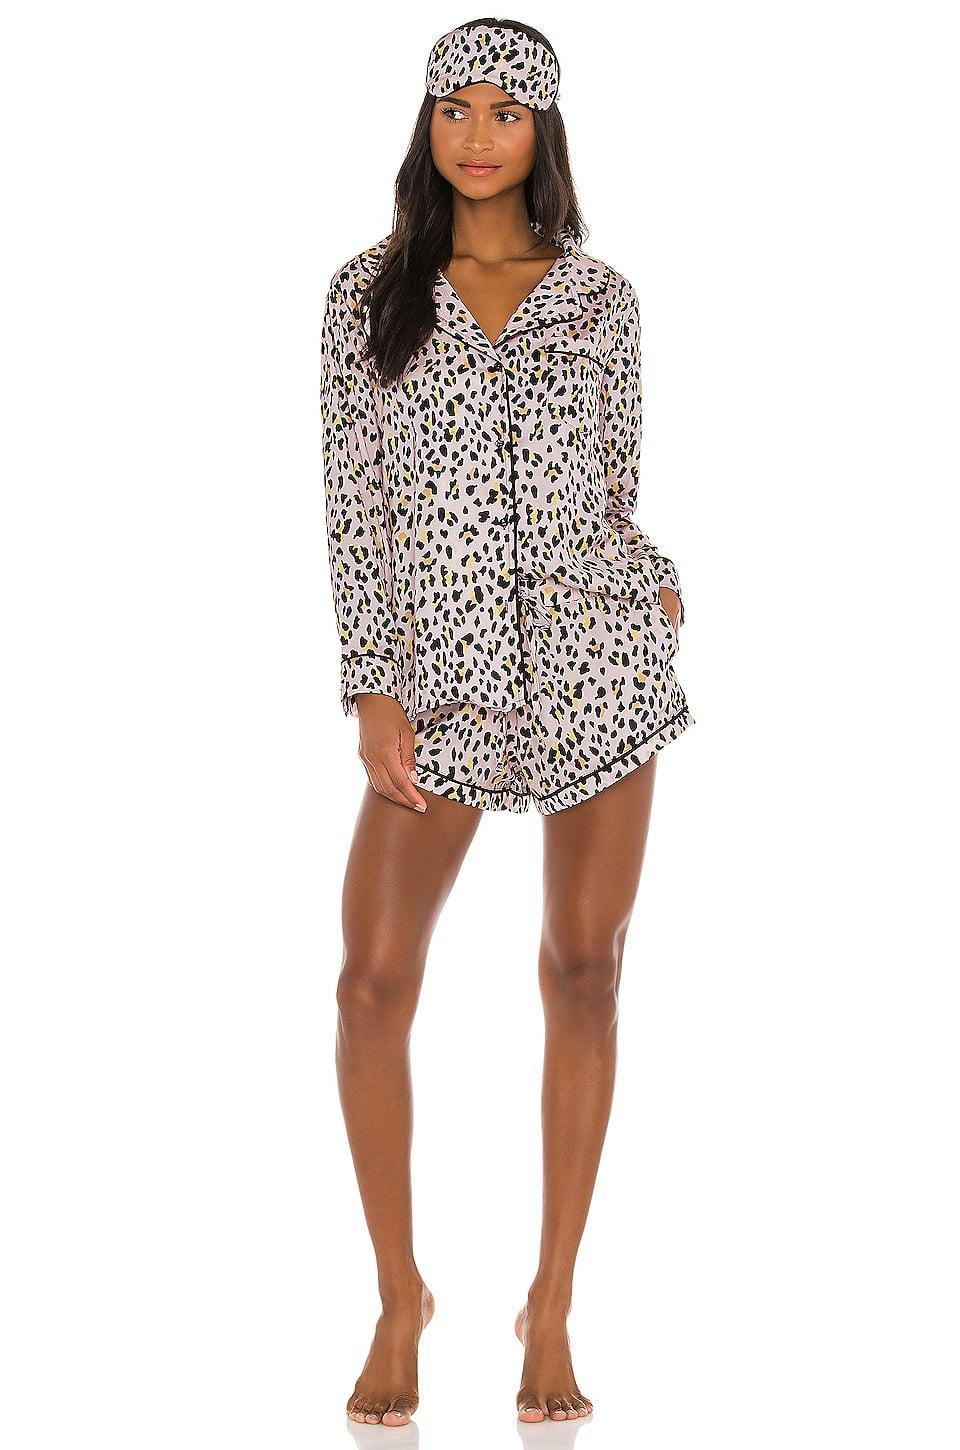 <p>Get cozy with this <span>Plush Cheetah Pajama and Eyemask Set</span> ($152).</p>